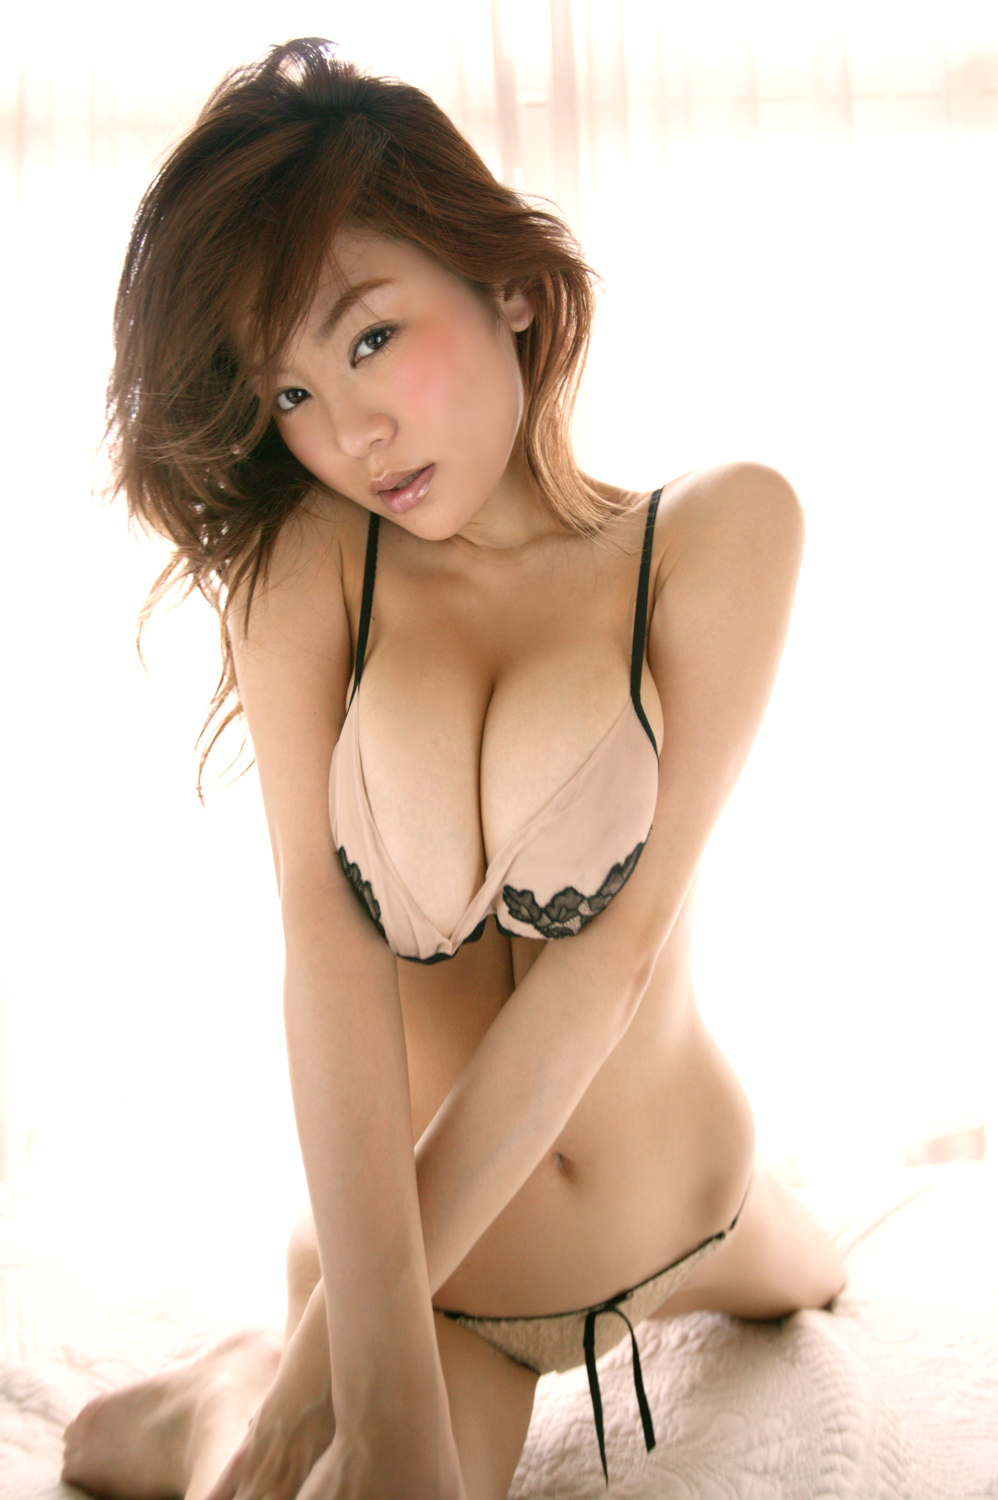 hotandsexy Yoko-Matsugane | hot wallpapers